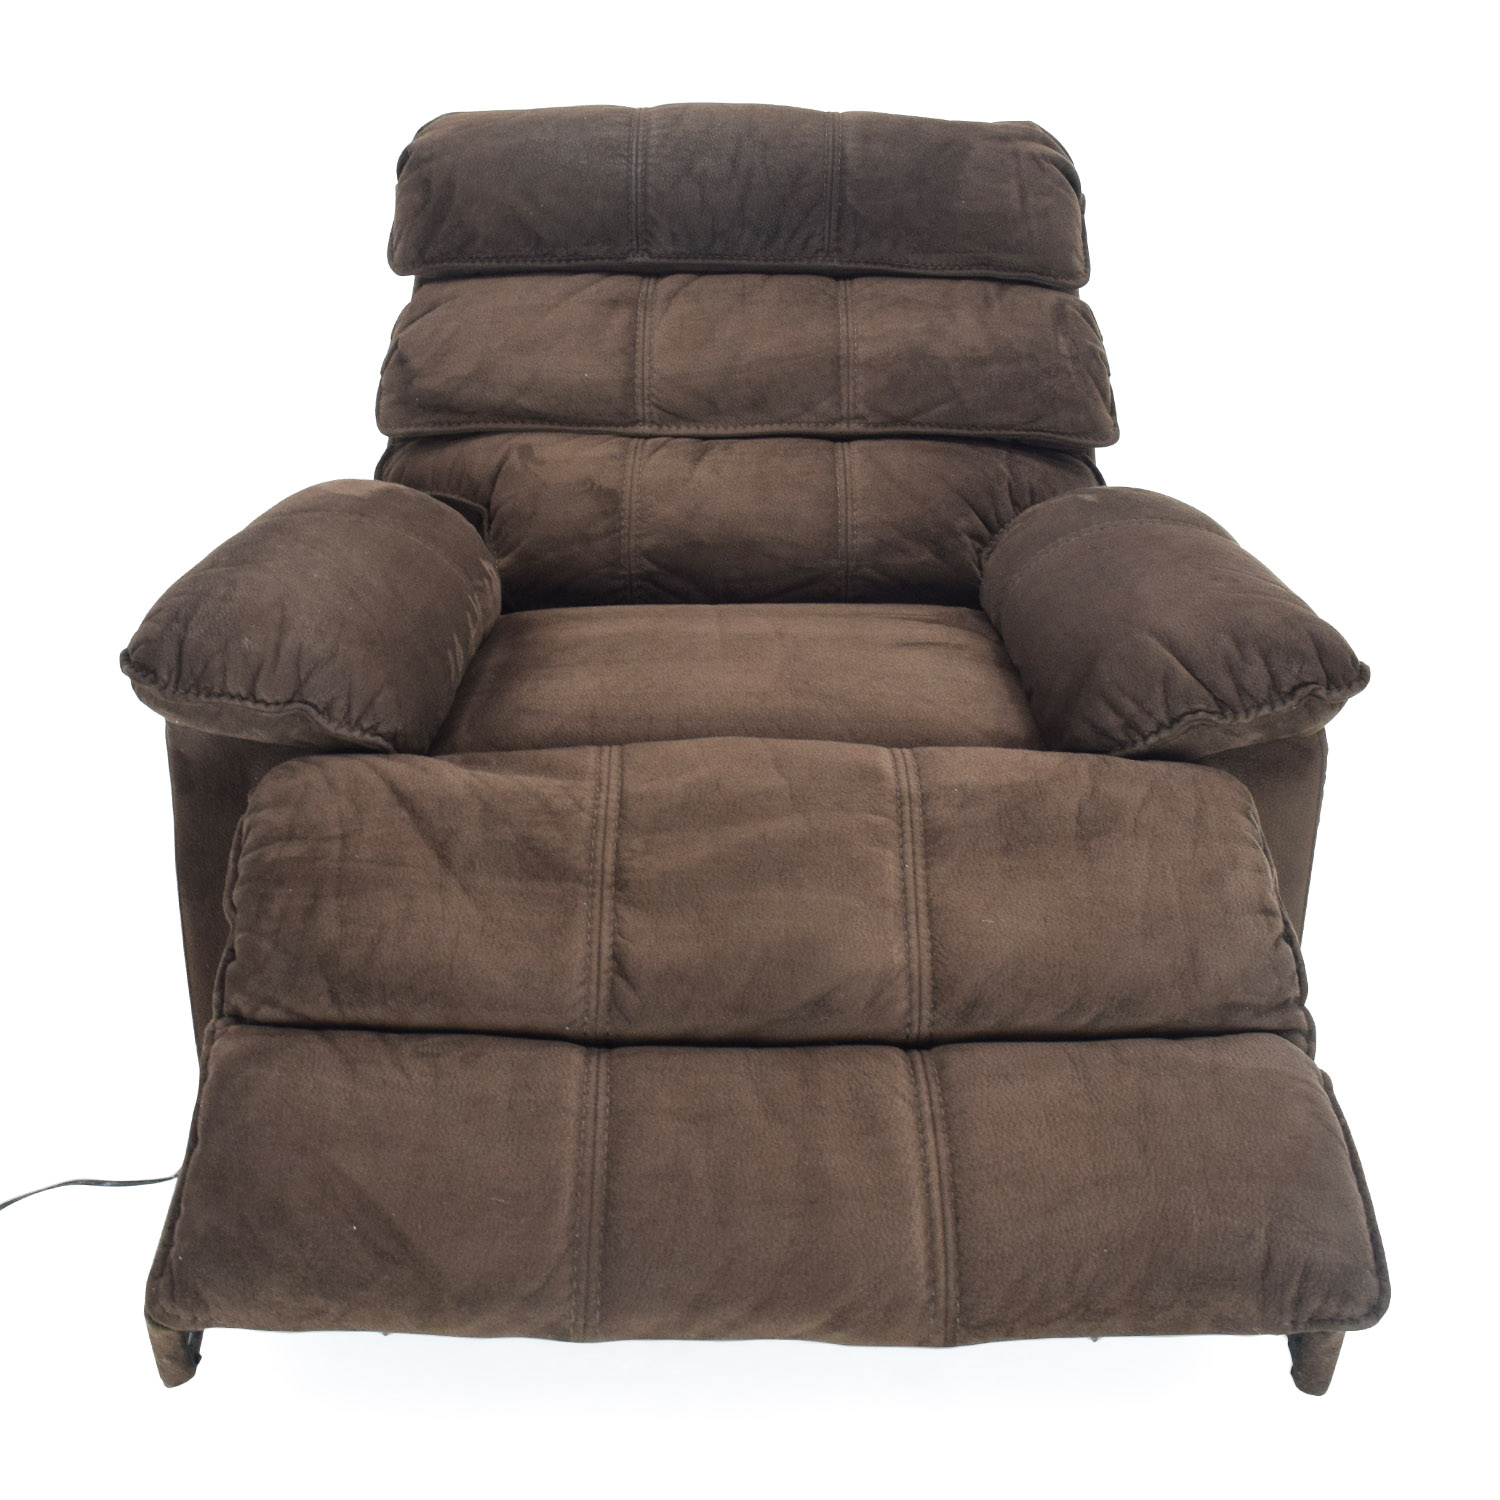 Macy's Macy's Recliner Chair / Chairs